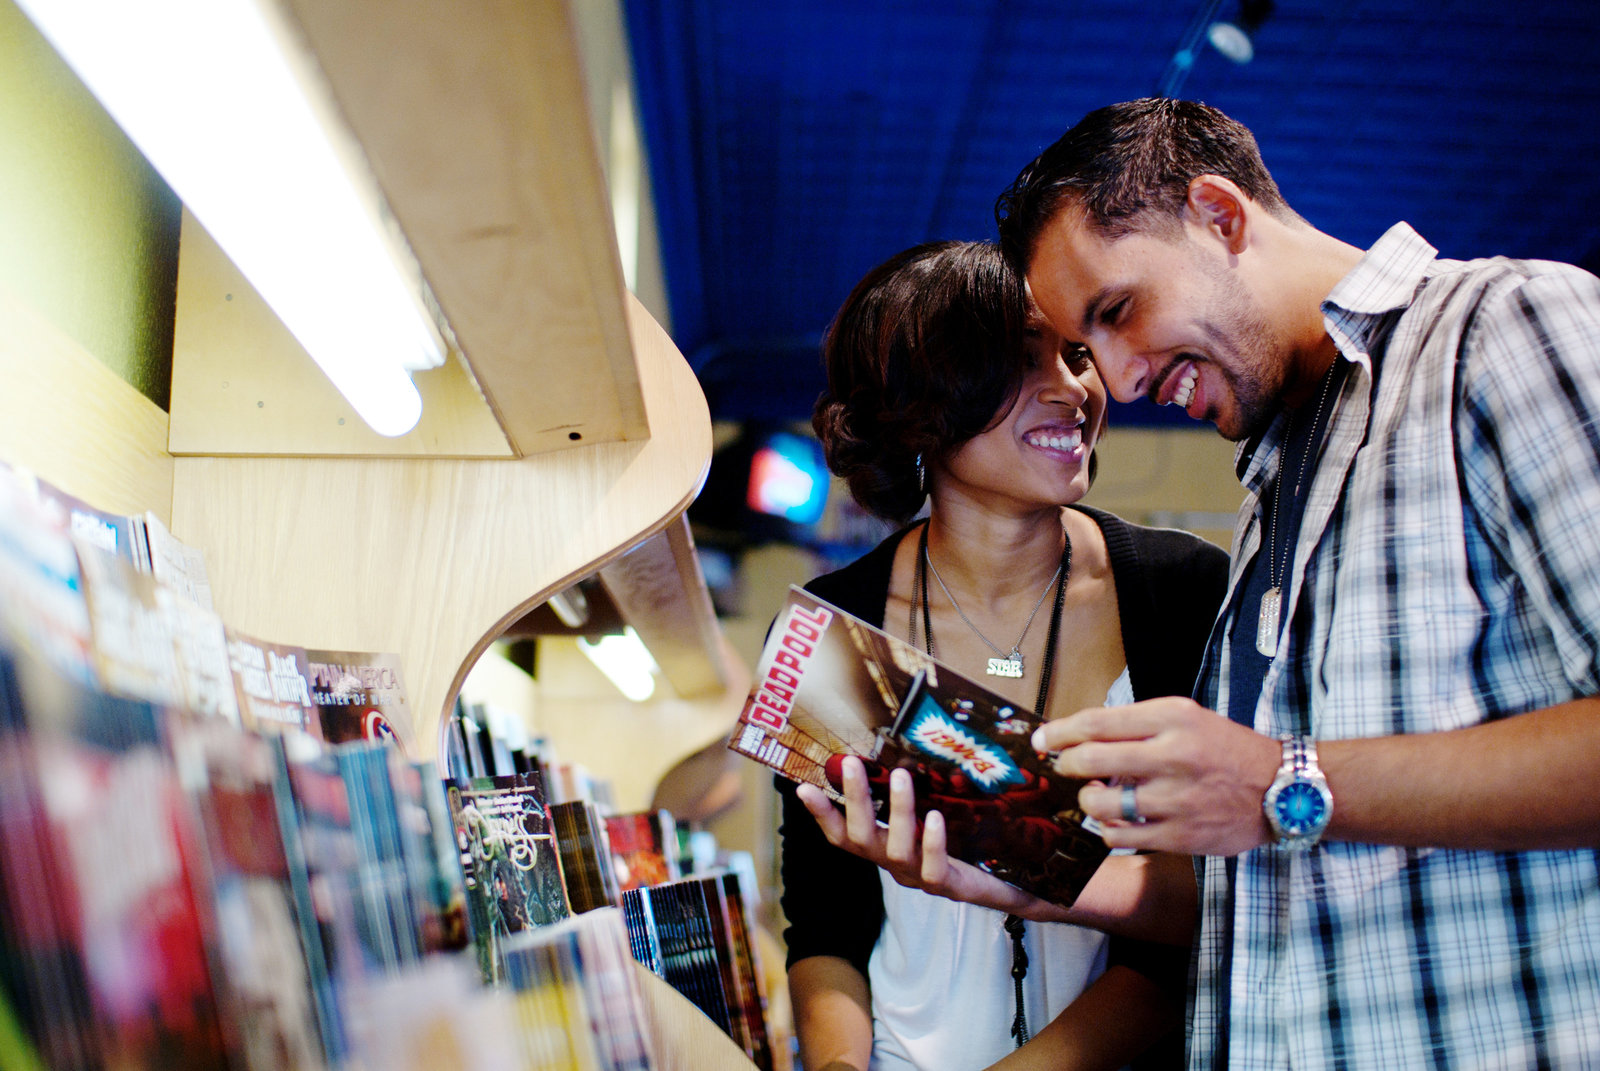 a girl looks on as her fiance reads a comic book in a comic book shop